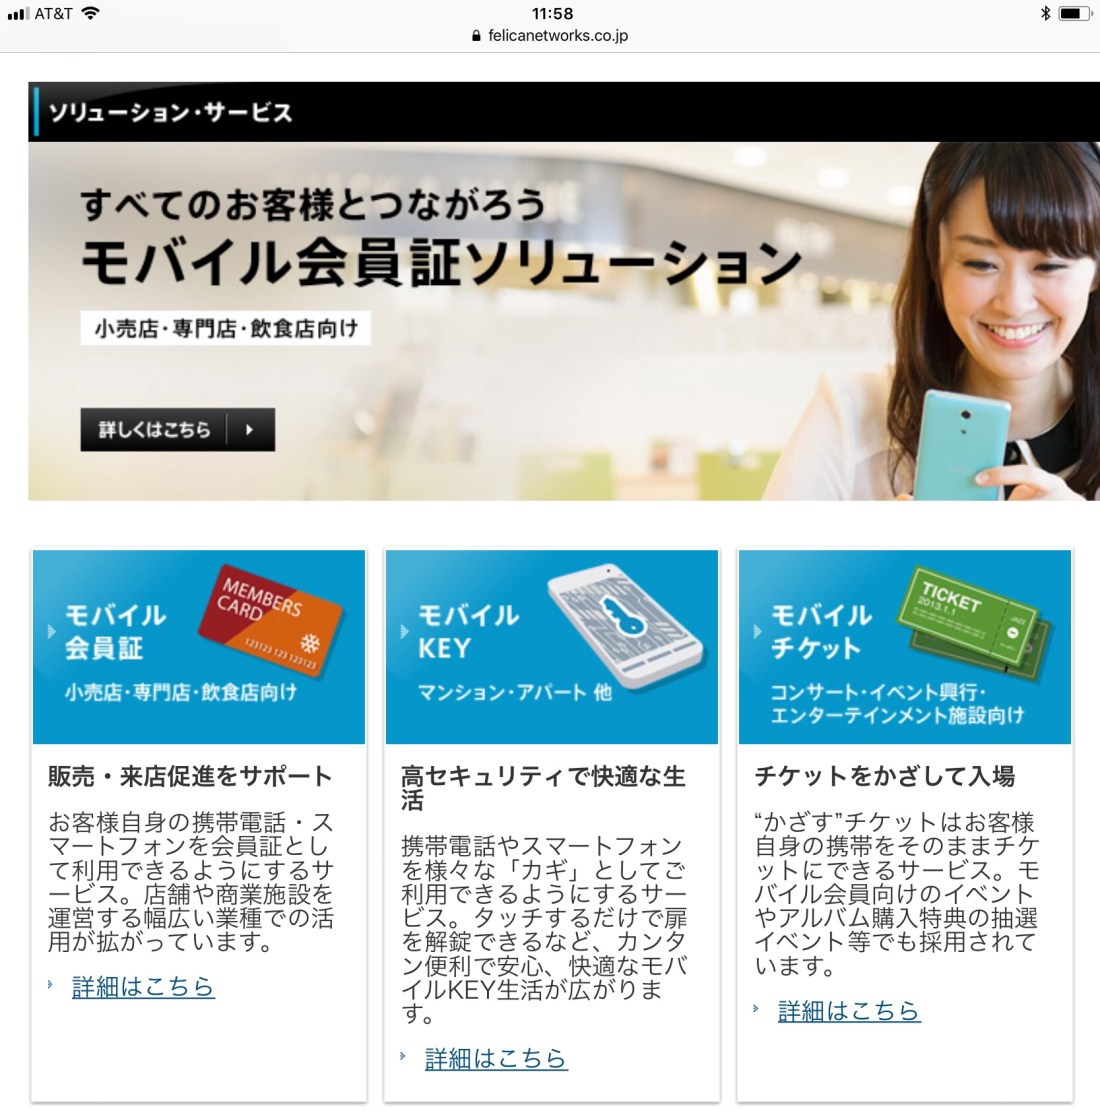 Mobile FeliCa functions can include members cards-mobile keys-mobile tickets